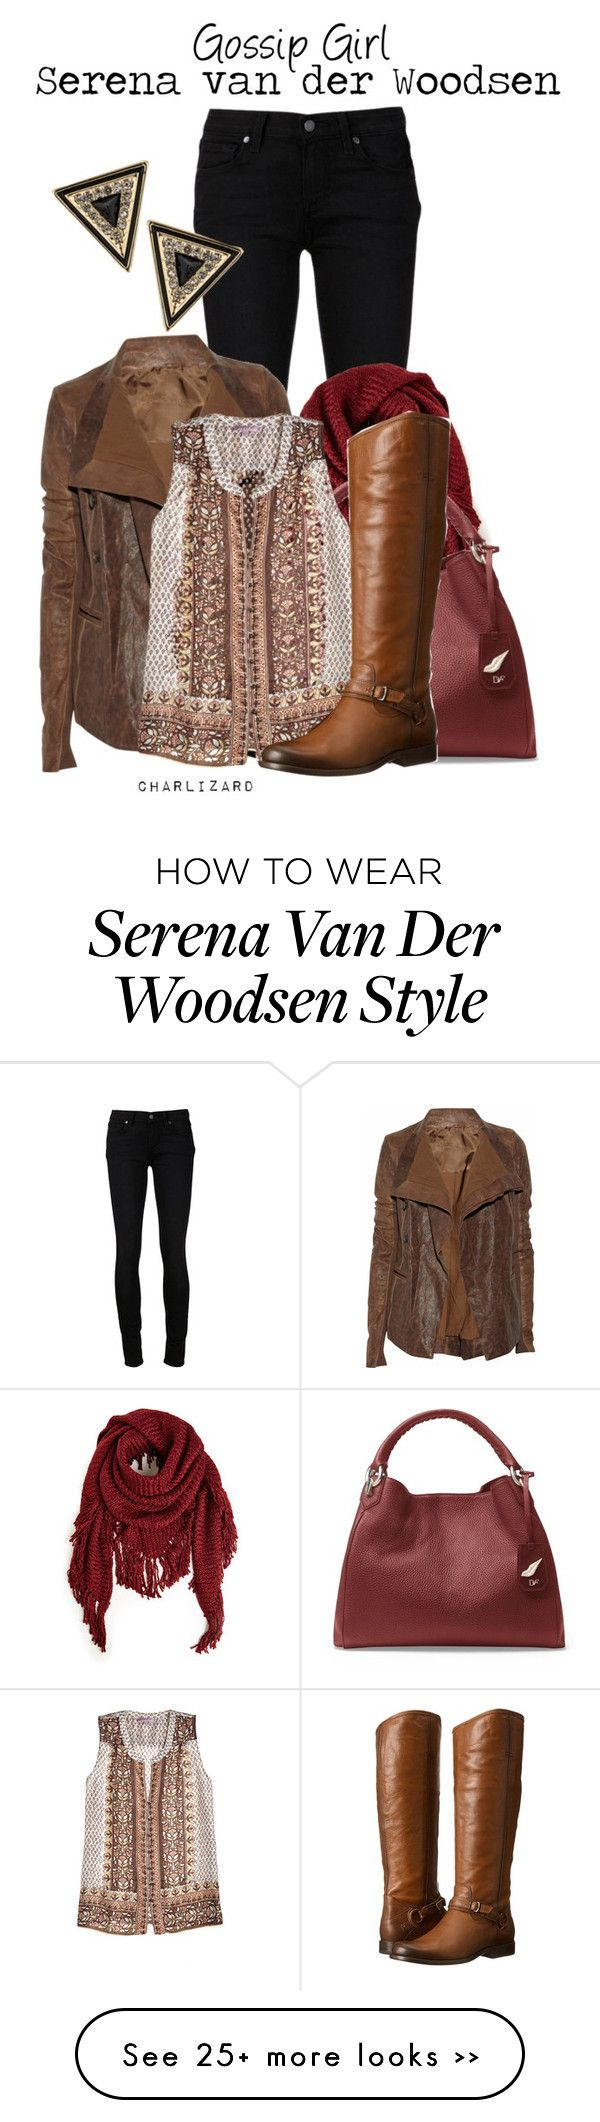 """Serena van der Woodsen"" by charlizard on Polyvore"